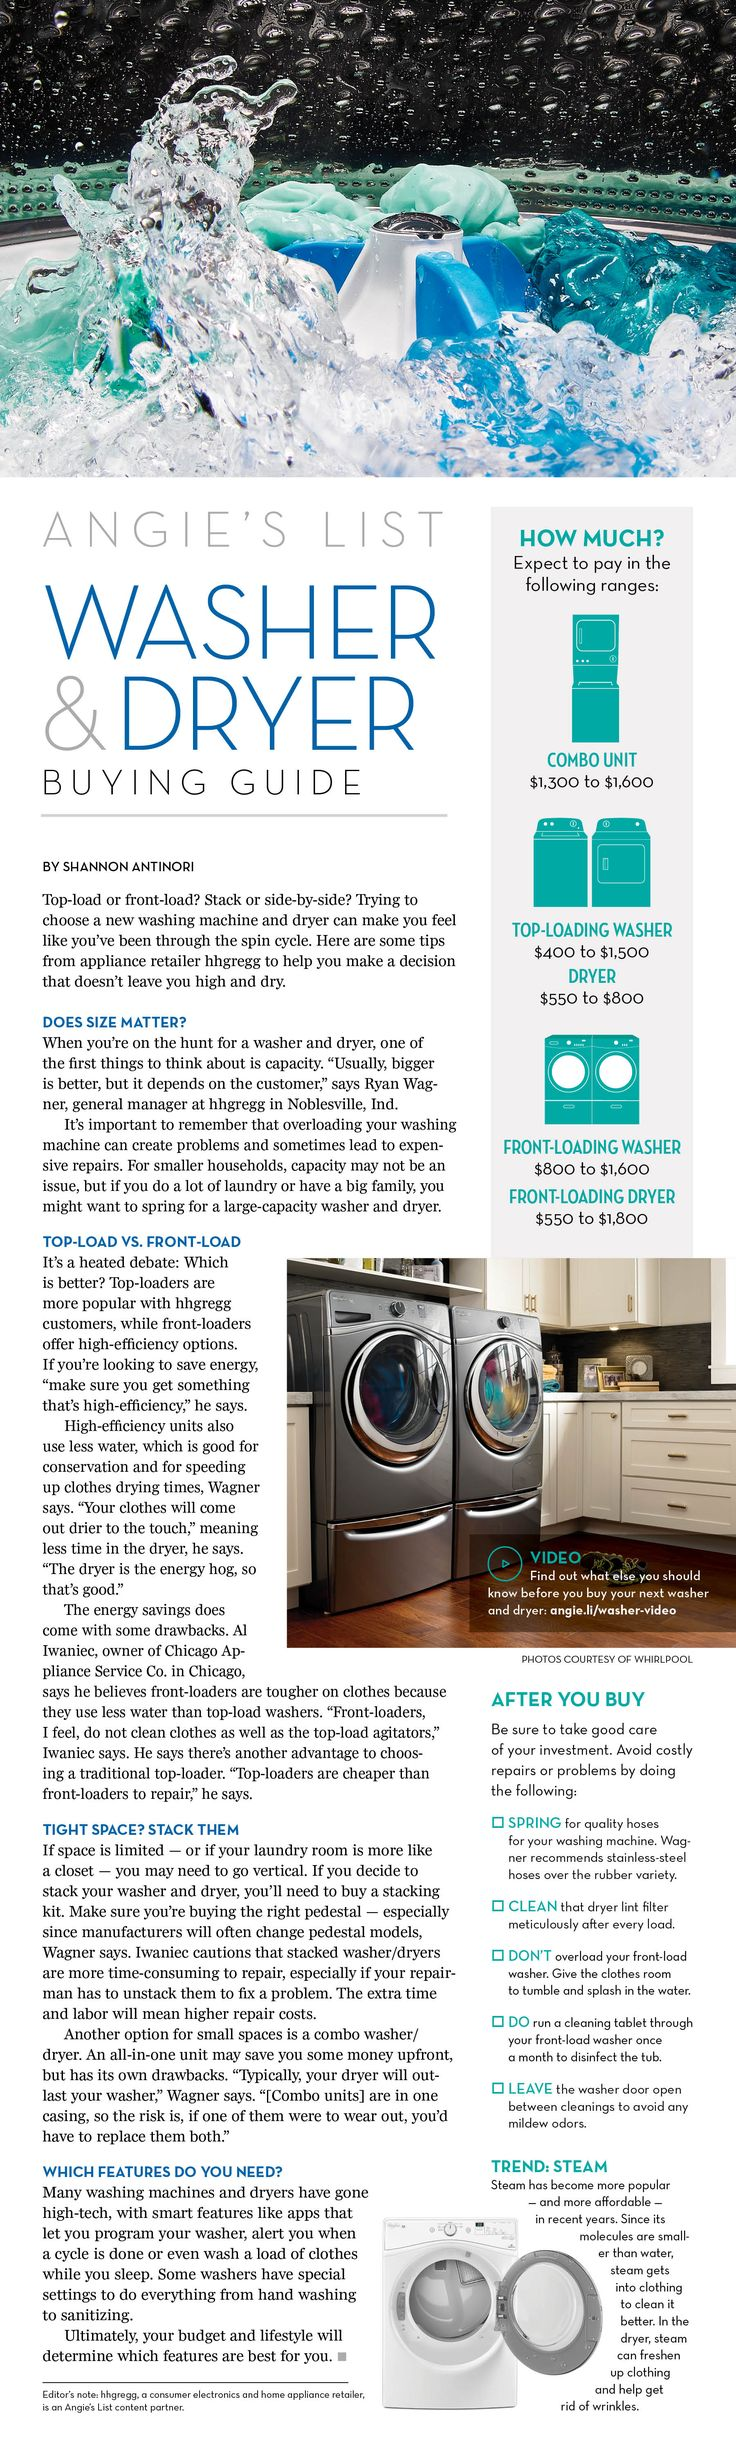 Buying a washer or dryer? Read this first!